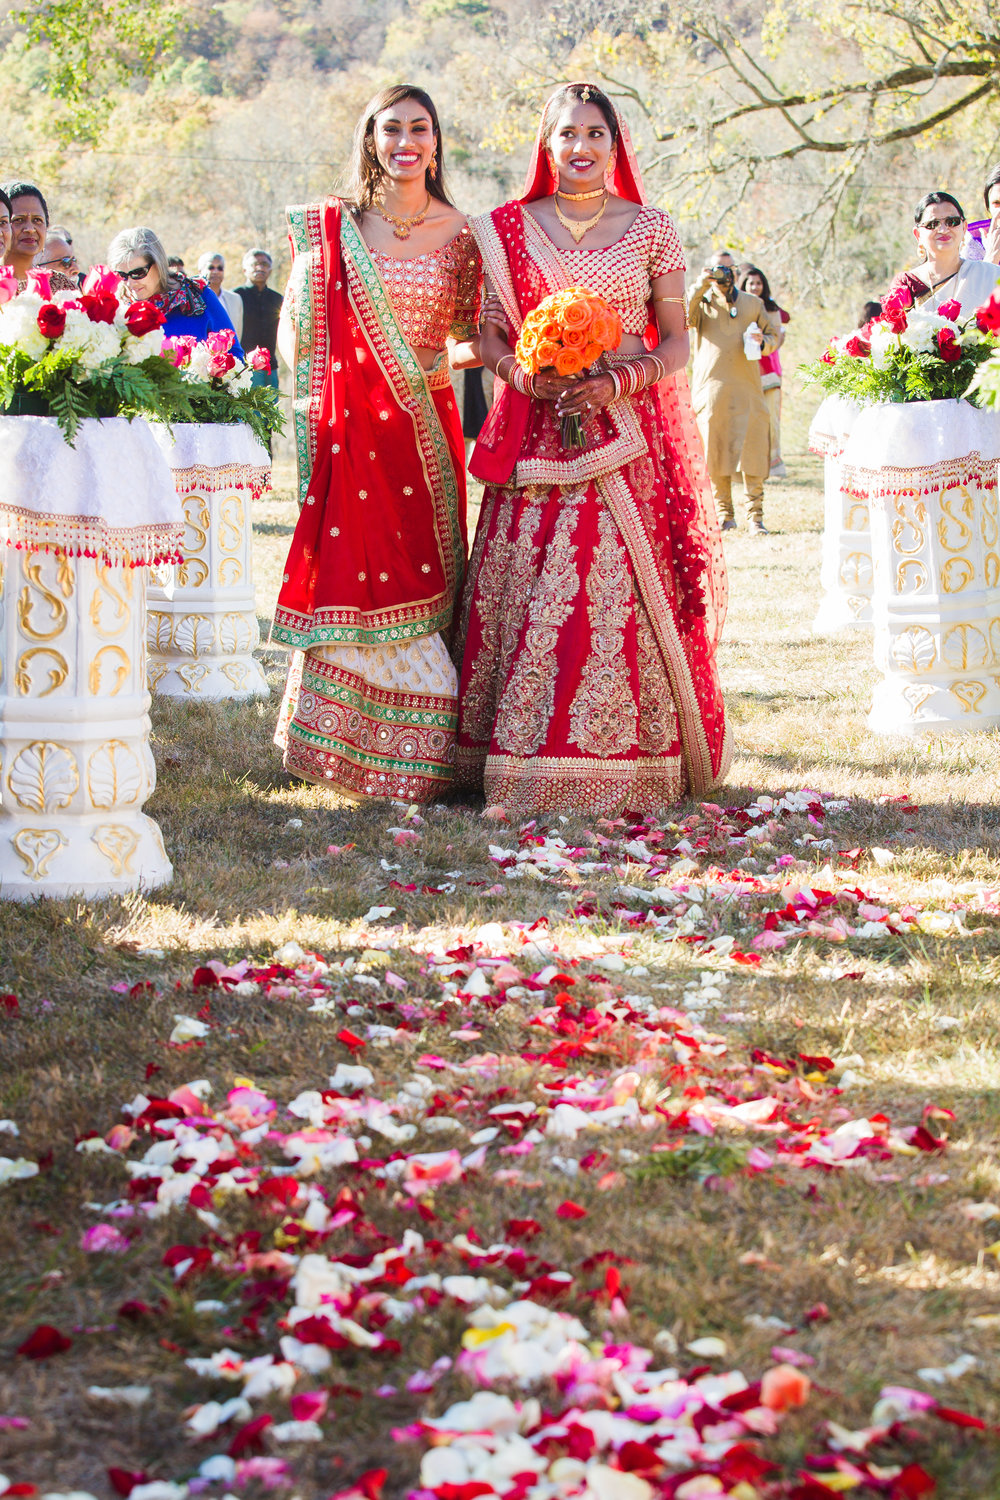 AnjaliArvind-Saturday-BrideEntrance-Proof-3600px-056-_MG_0571.jpg